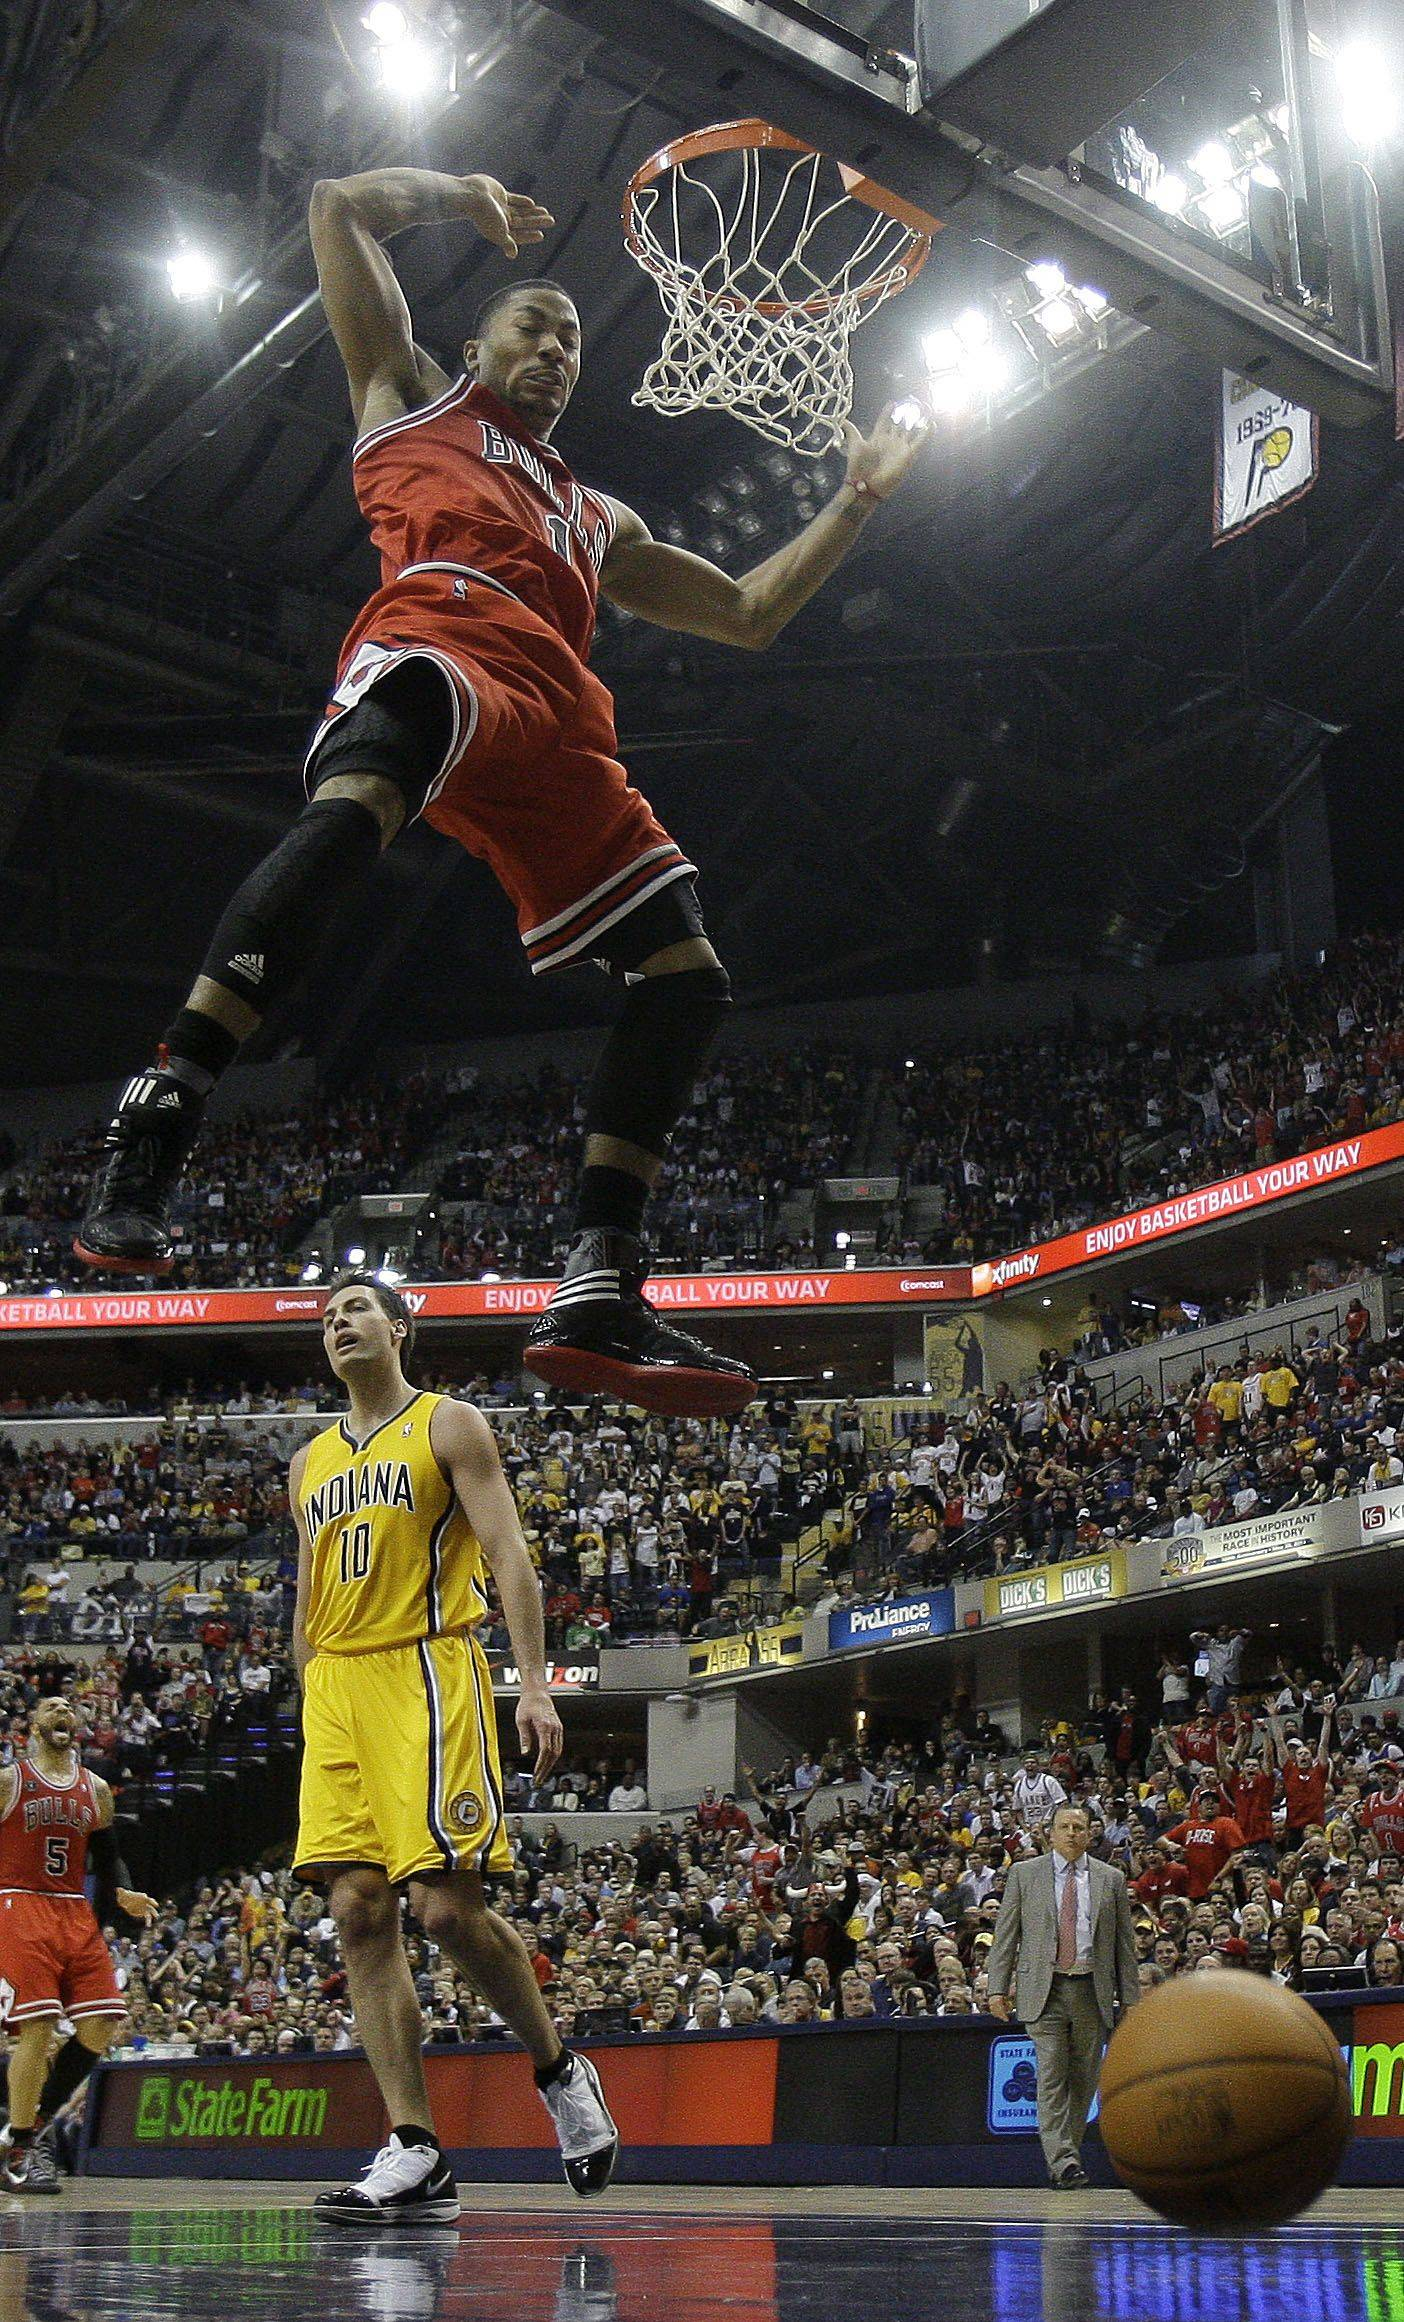 Chicago Bulls' Derrick Rose (1) reacts after a dunk during the first half of Game 4 of a first-round NBA basketball series in Indianapolis, Saturday, April 23, 2011. Indiana Pacers' Jeff Foster (10) is at left.